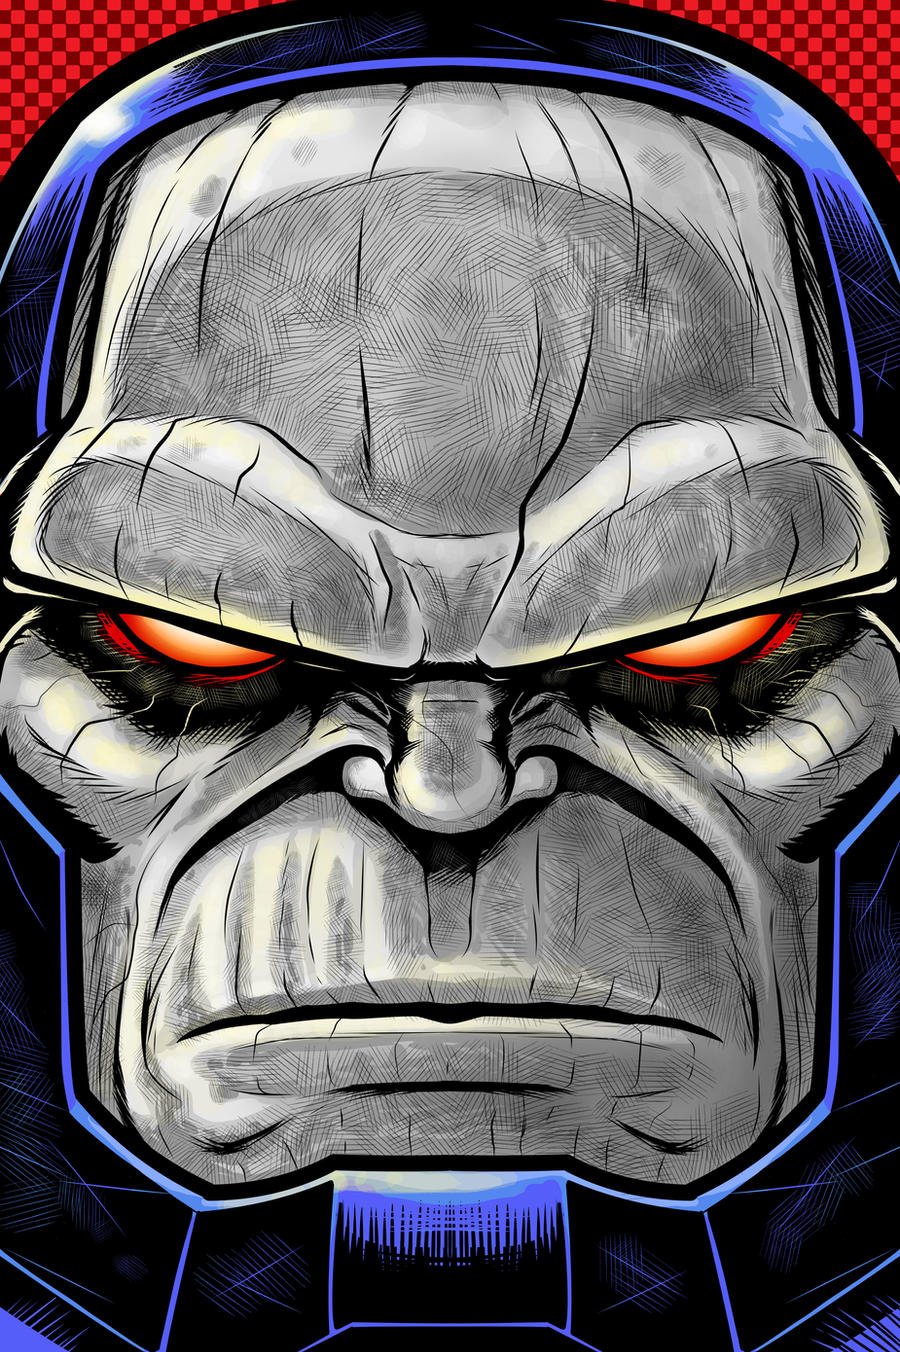 DARKSEID Portrait Series by Thuddleston